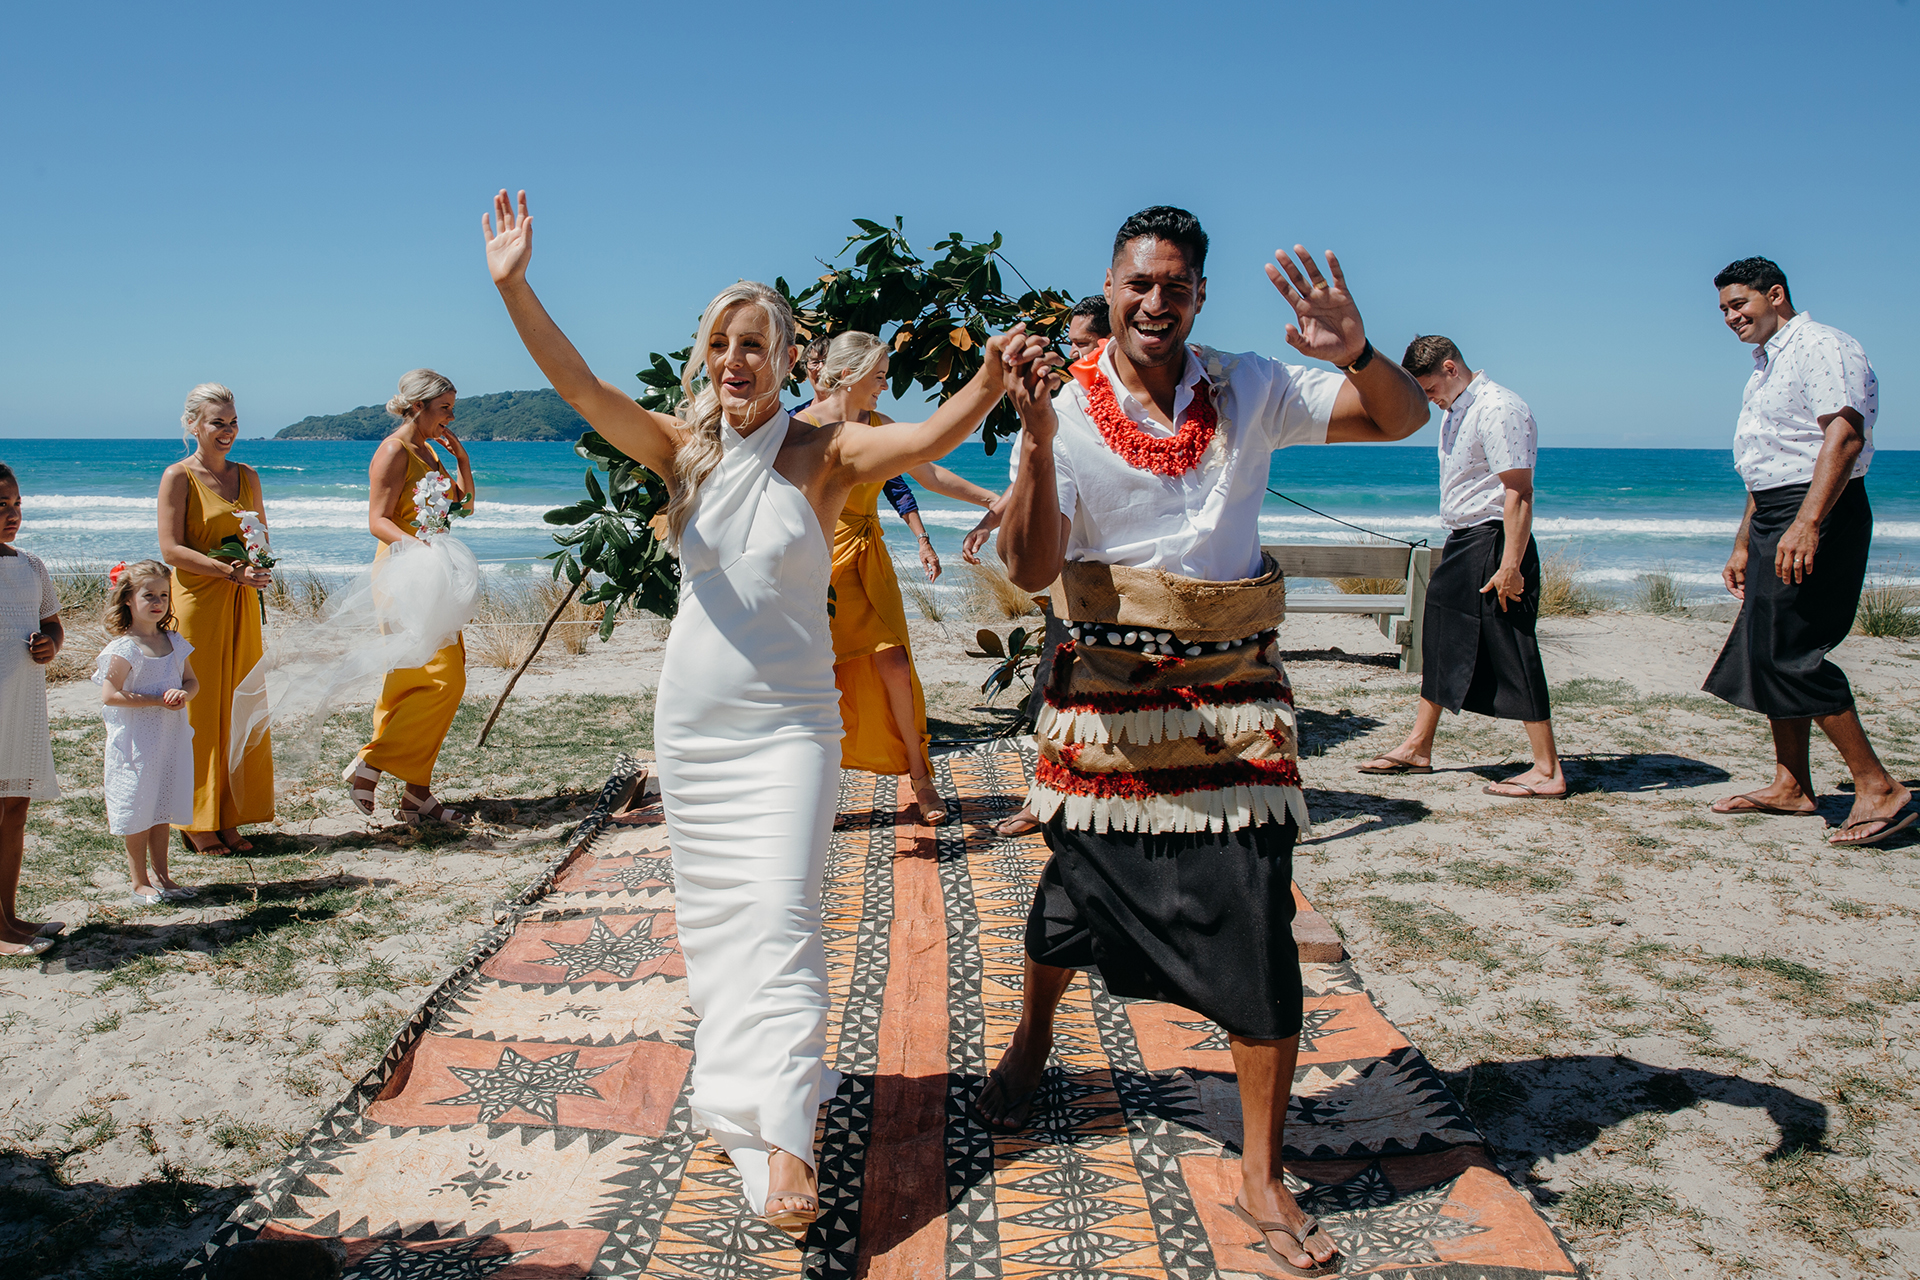 A stunning photo of a Bride and Groom who have just been announced as husband and wife. Their wedding ceremony was at Pauanui Beach, Coromandel in New Zealand. Their wedding photographer was Mala Photography from Auckland.